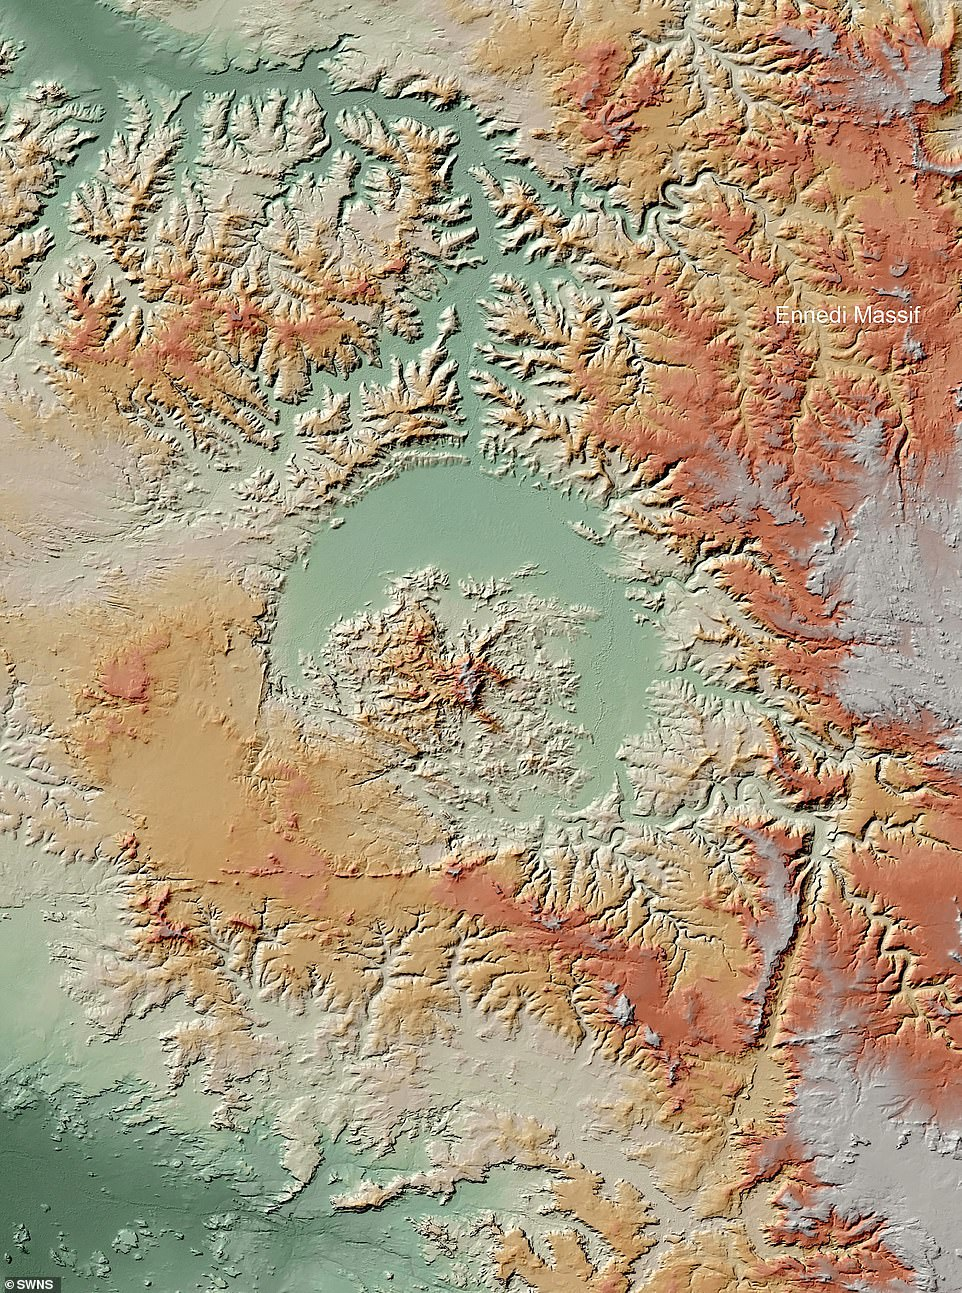 The books also introduce readers to basic principles of impact drilling, radar remote sensing, and provide details of the TanDEM-X mission and the researchers' fieldwork.  Pictured: Guindy Vada crater in Chad